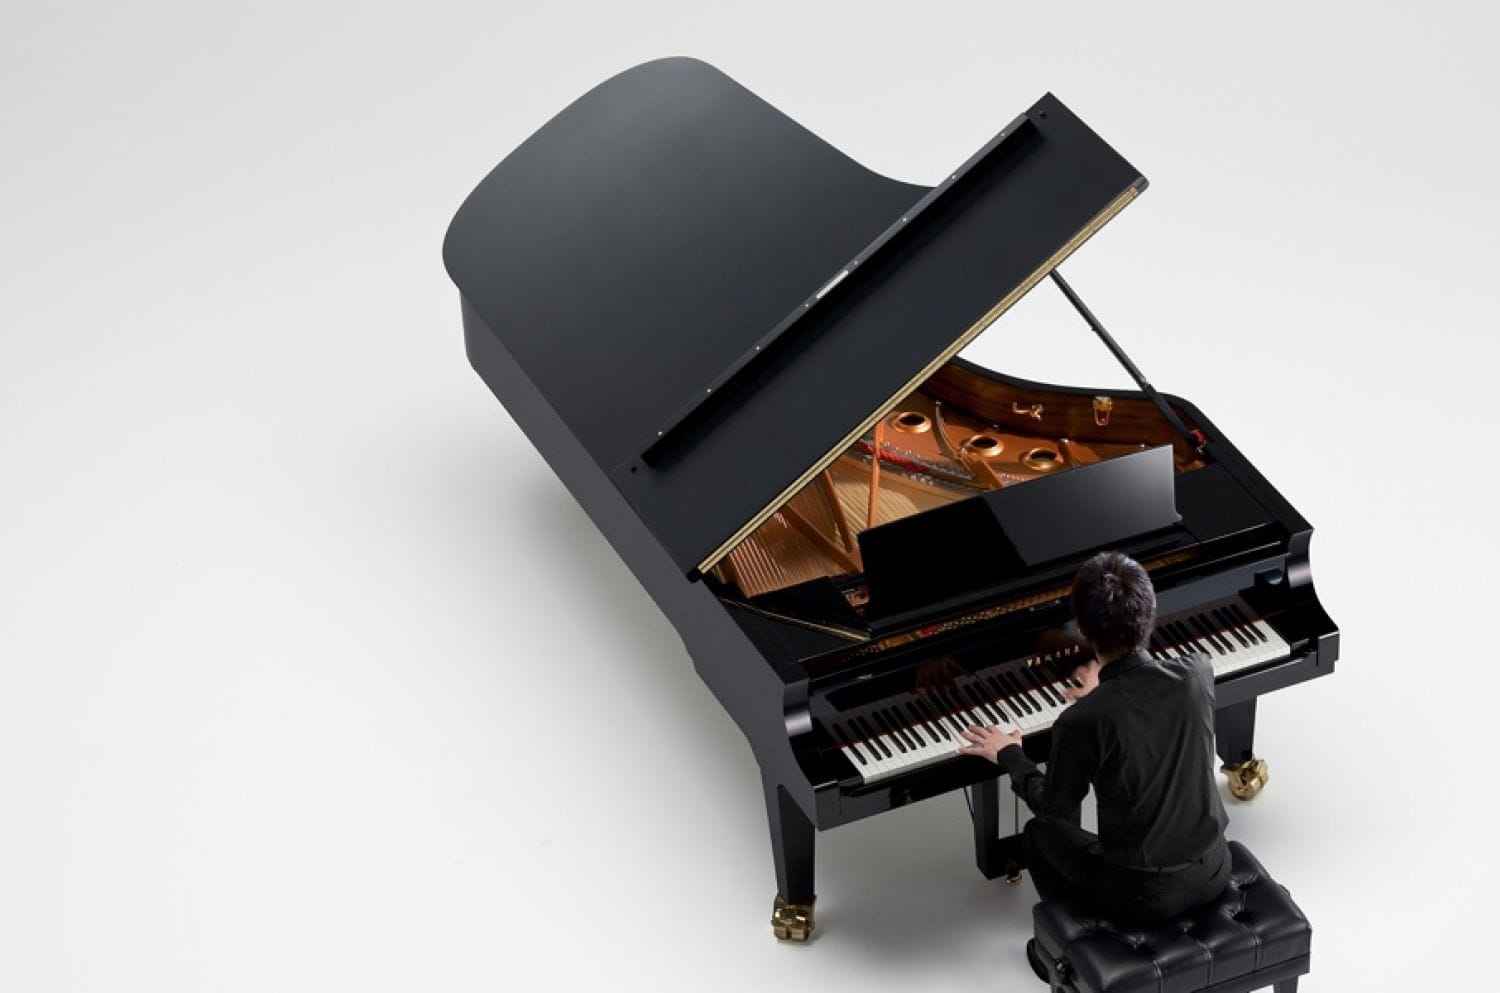 A woman playing a Yamaha concert grand piano with the lid open in a large empty space.